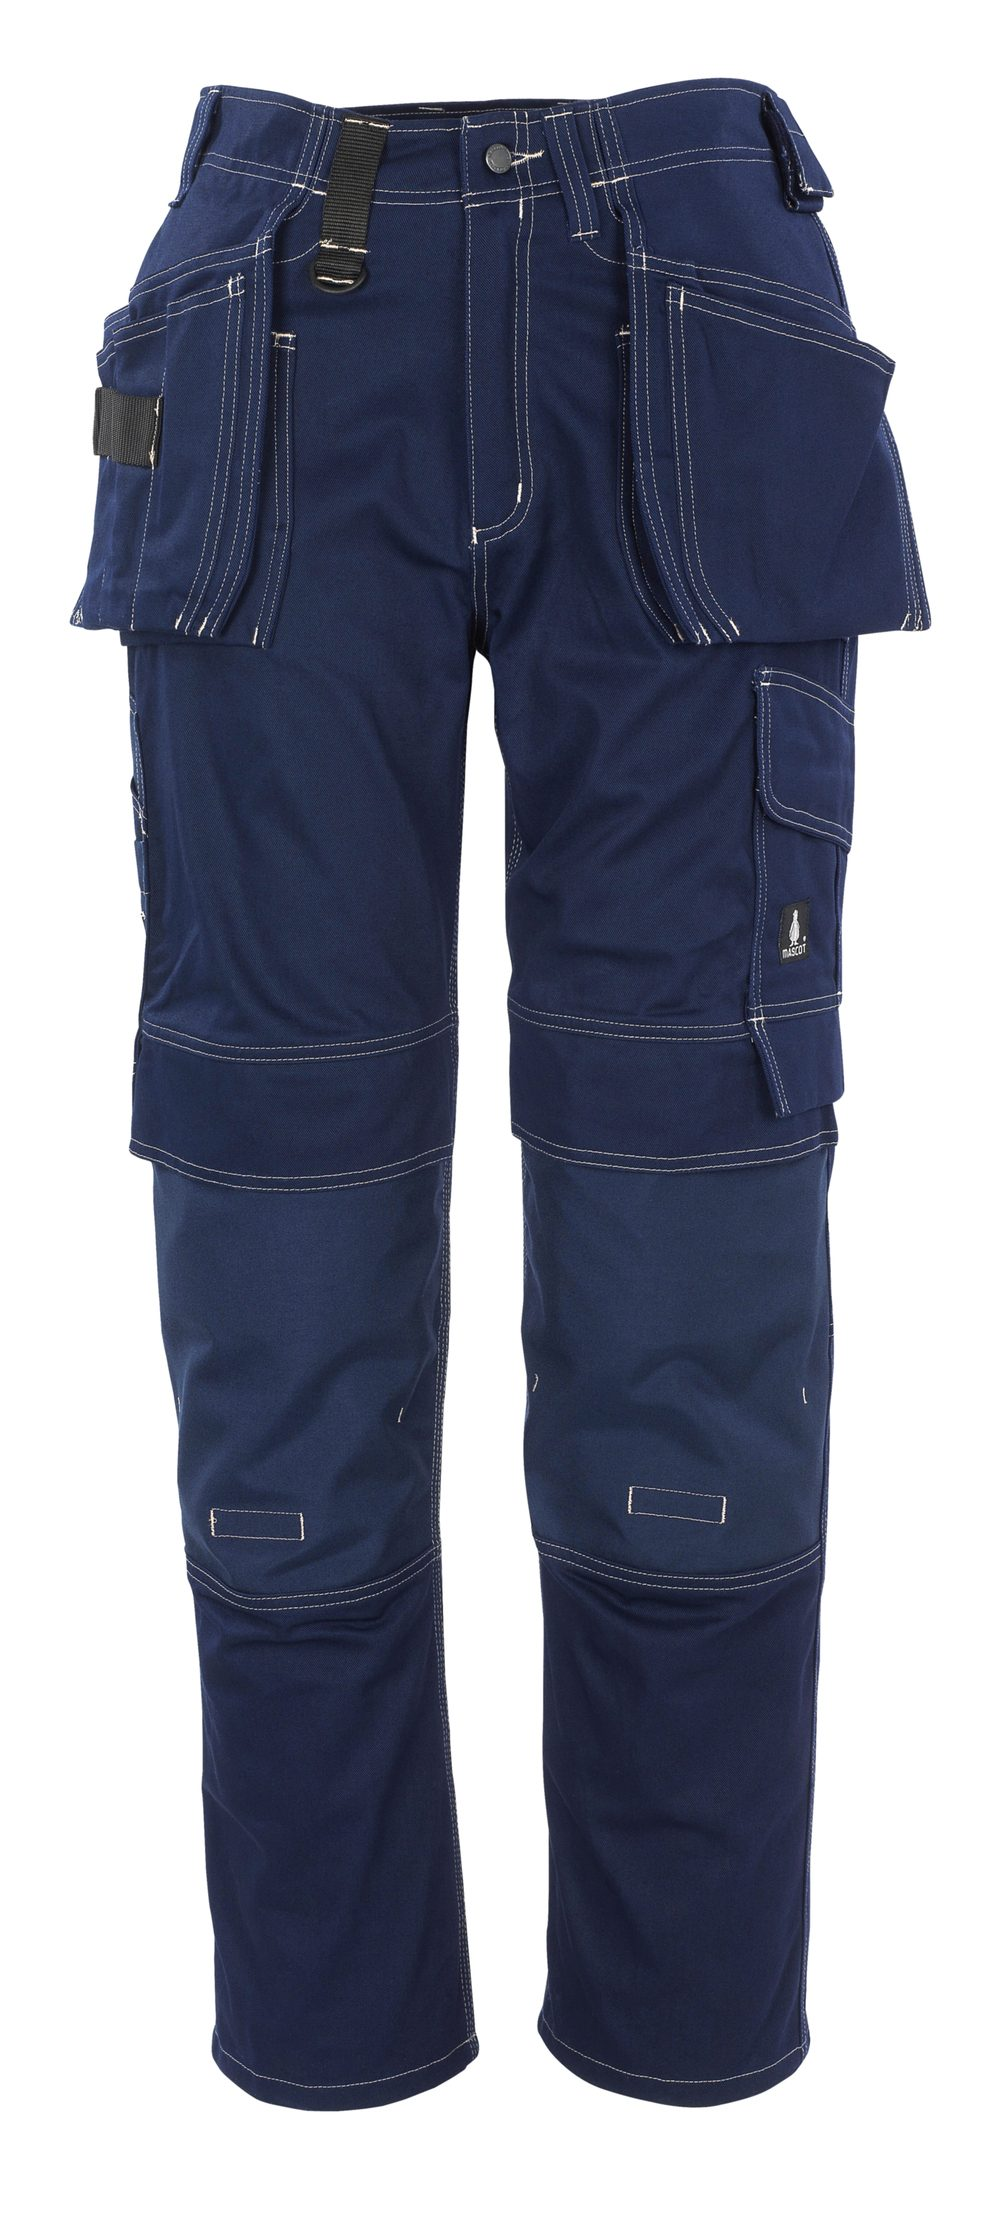 Mascot Atlanta Pants Navy Blue